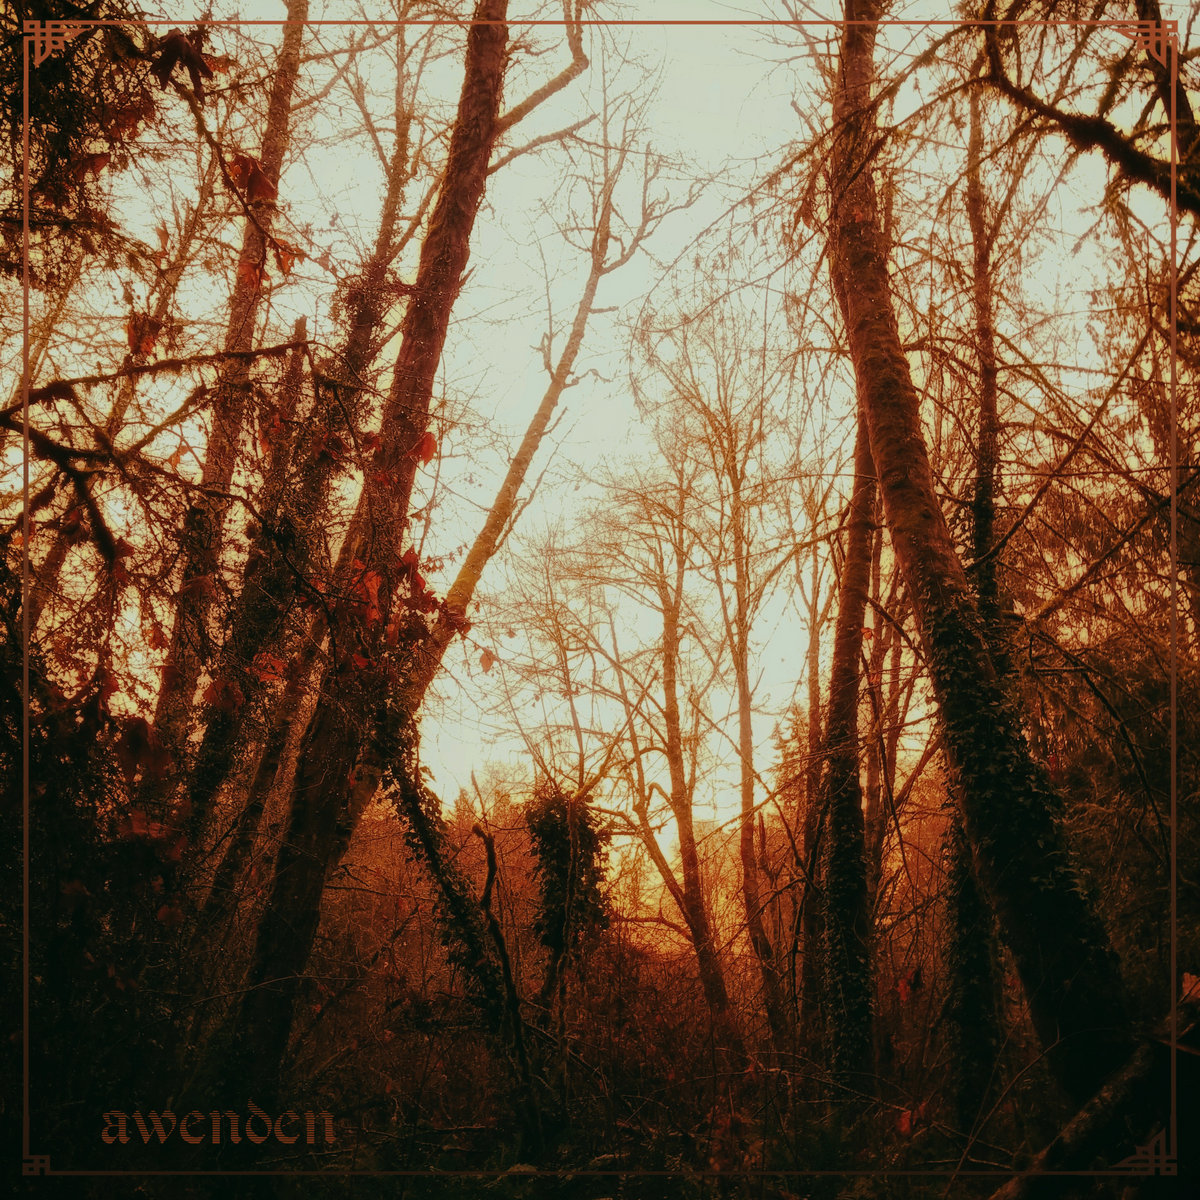 awenden - golden hour